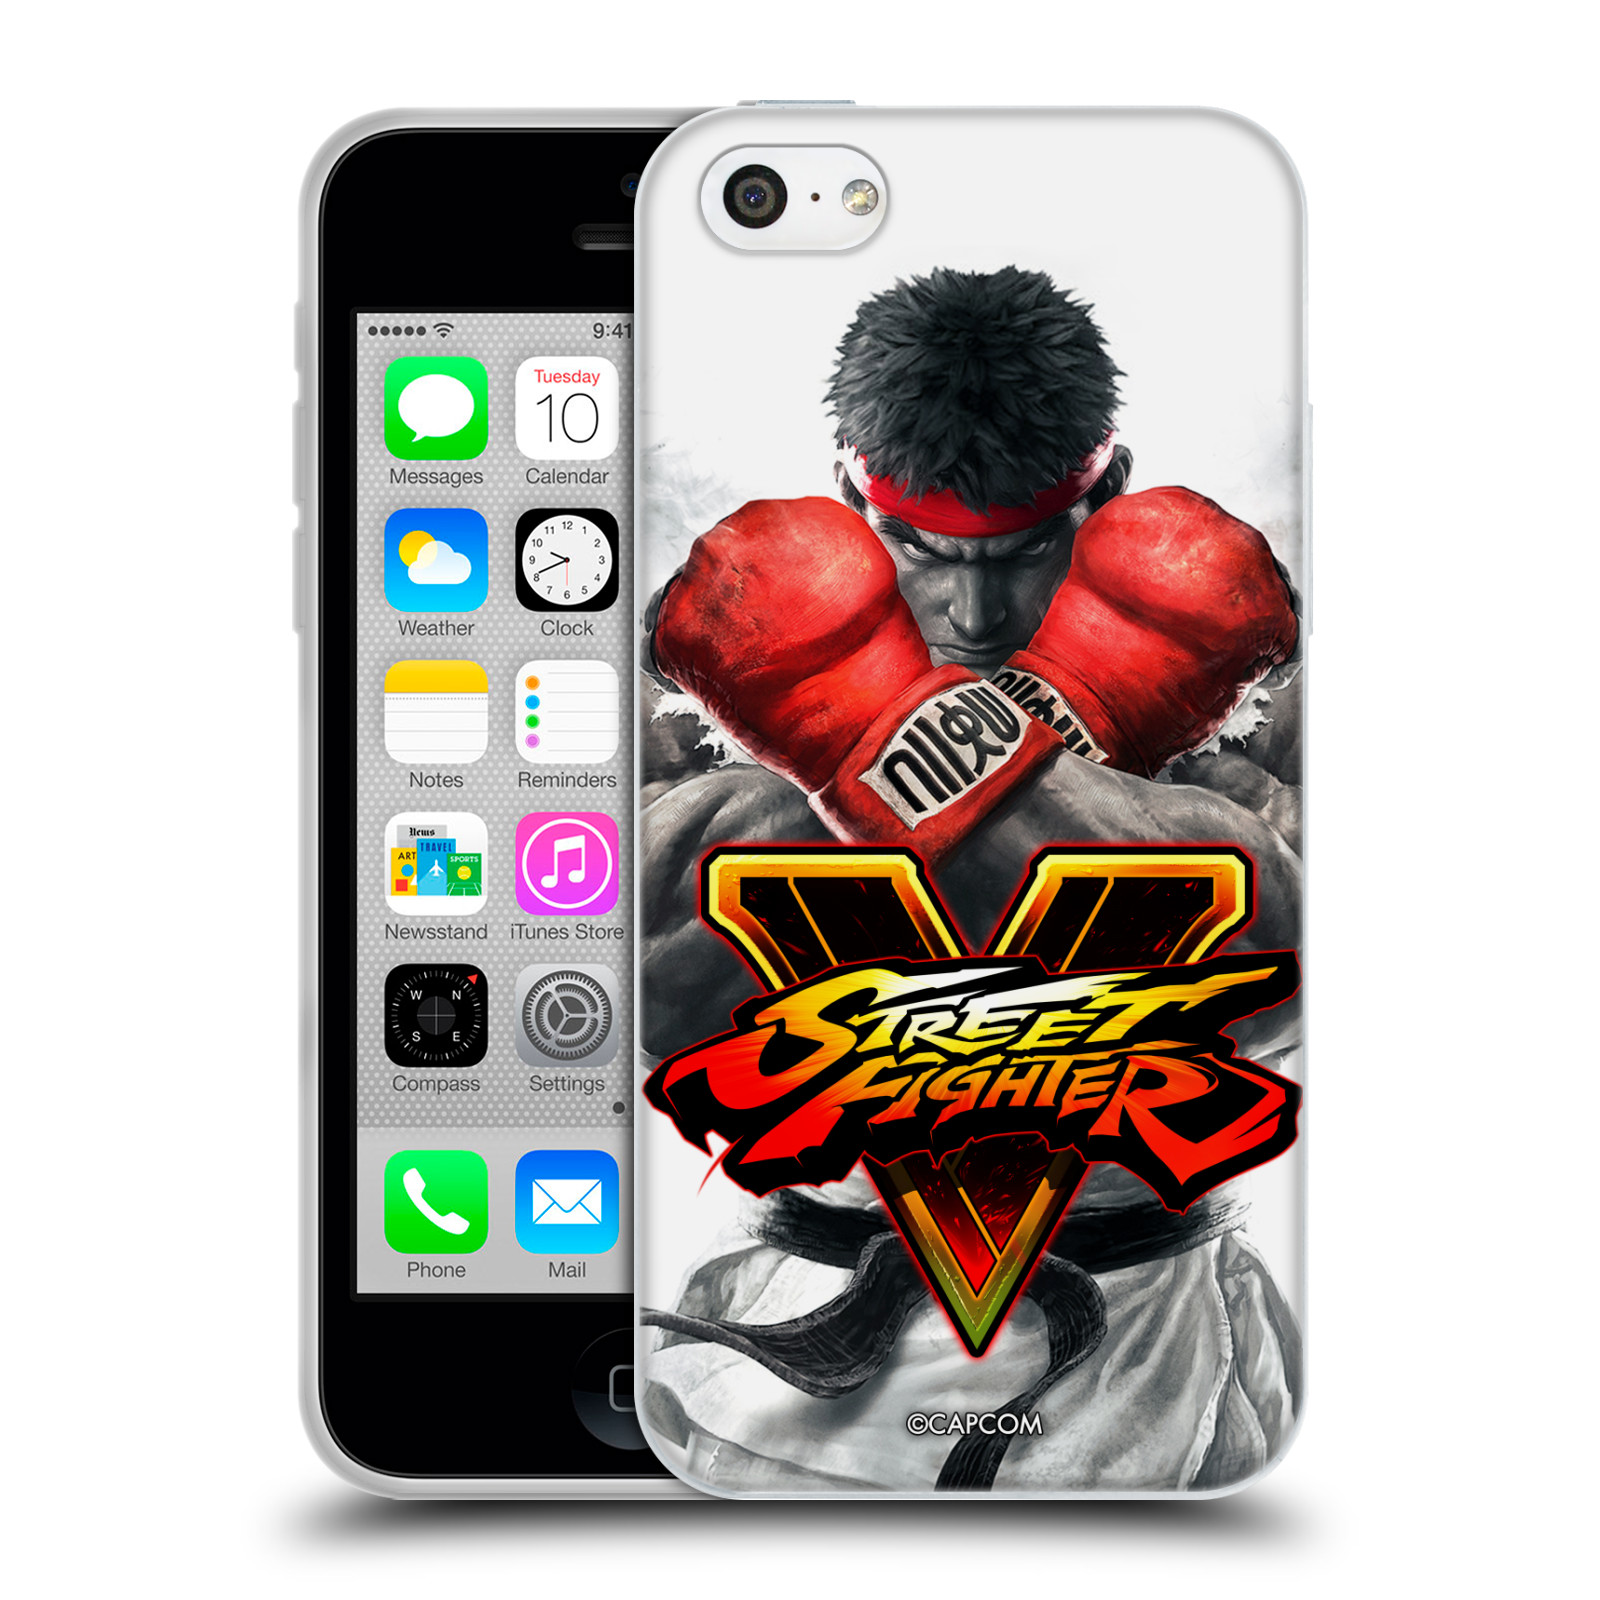 HEAD CASE silikonový obal na mobil Apple Iphone 5C oficiální kryt STREET FIGHTER Boxer Ryu